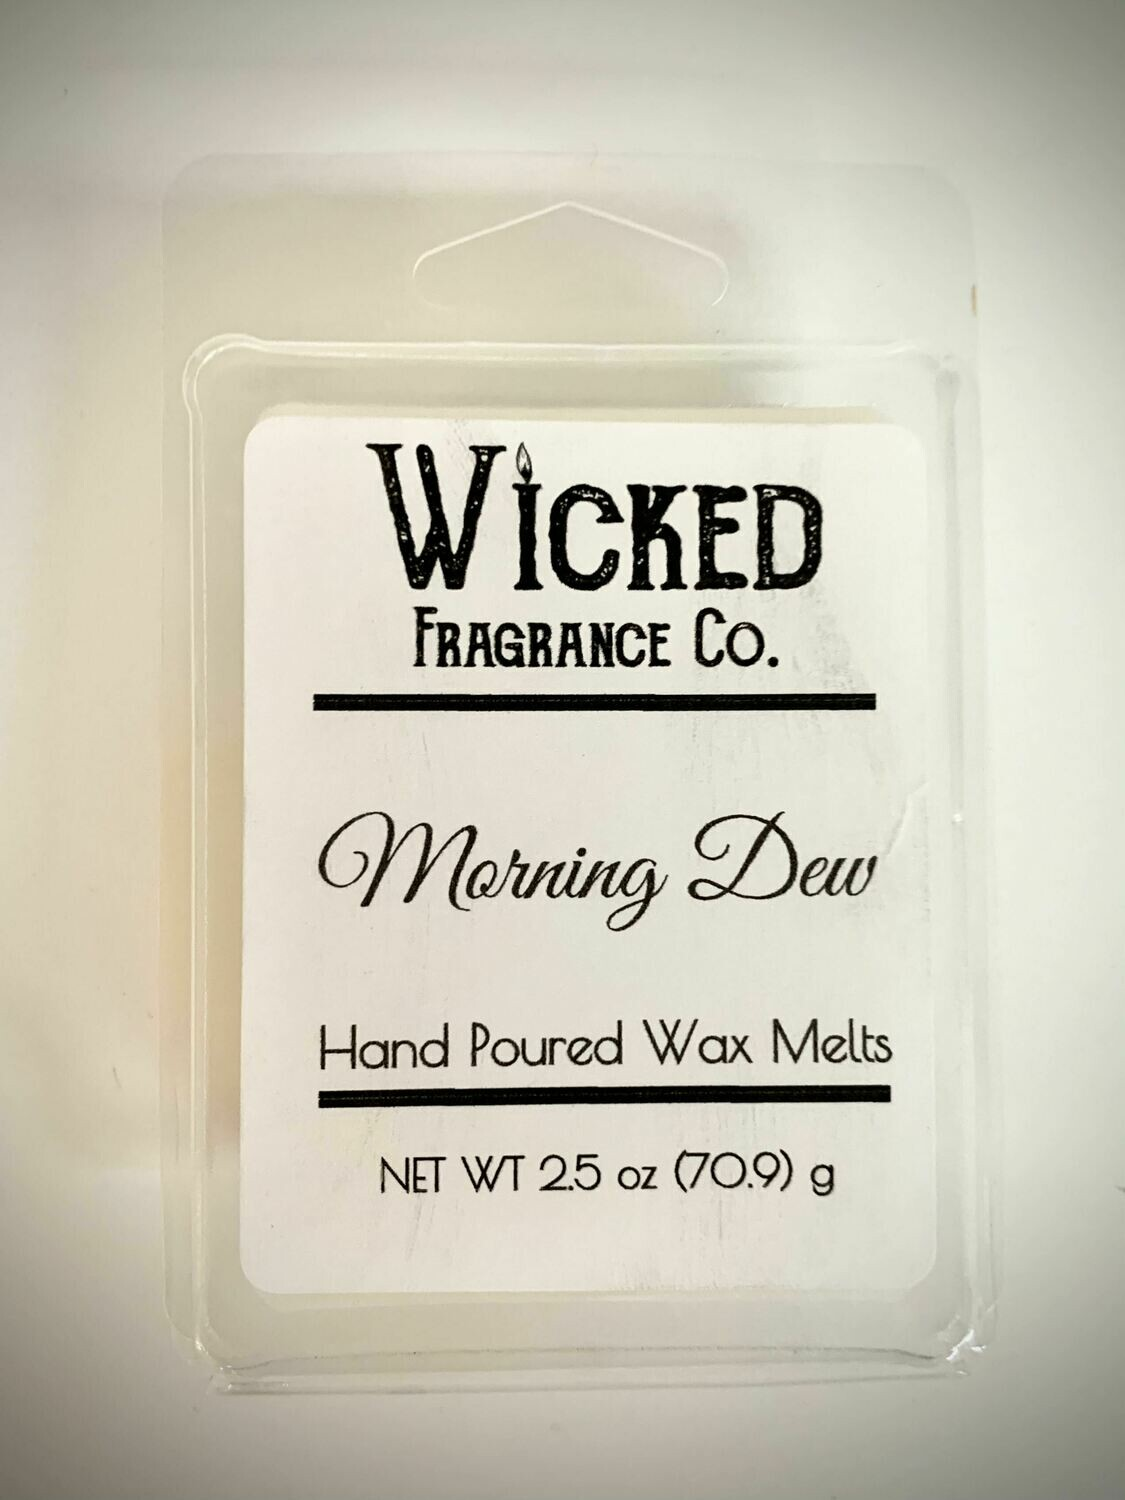 Morning Dew Wax Melts